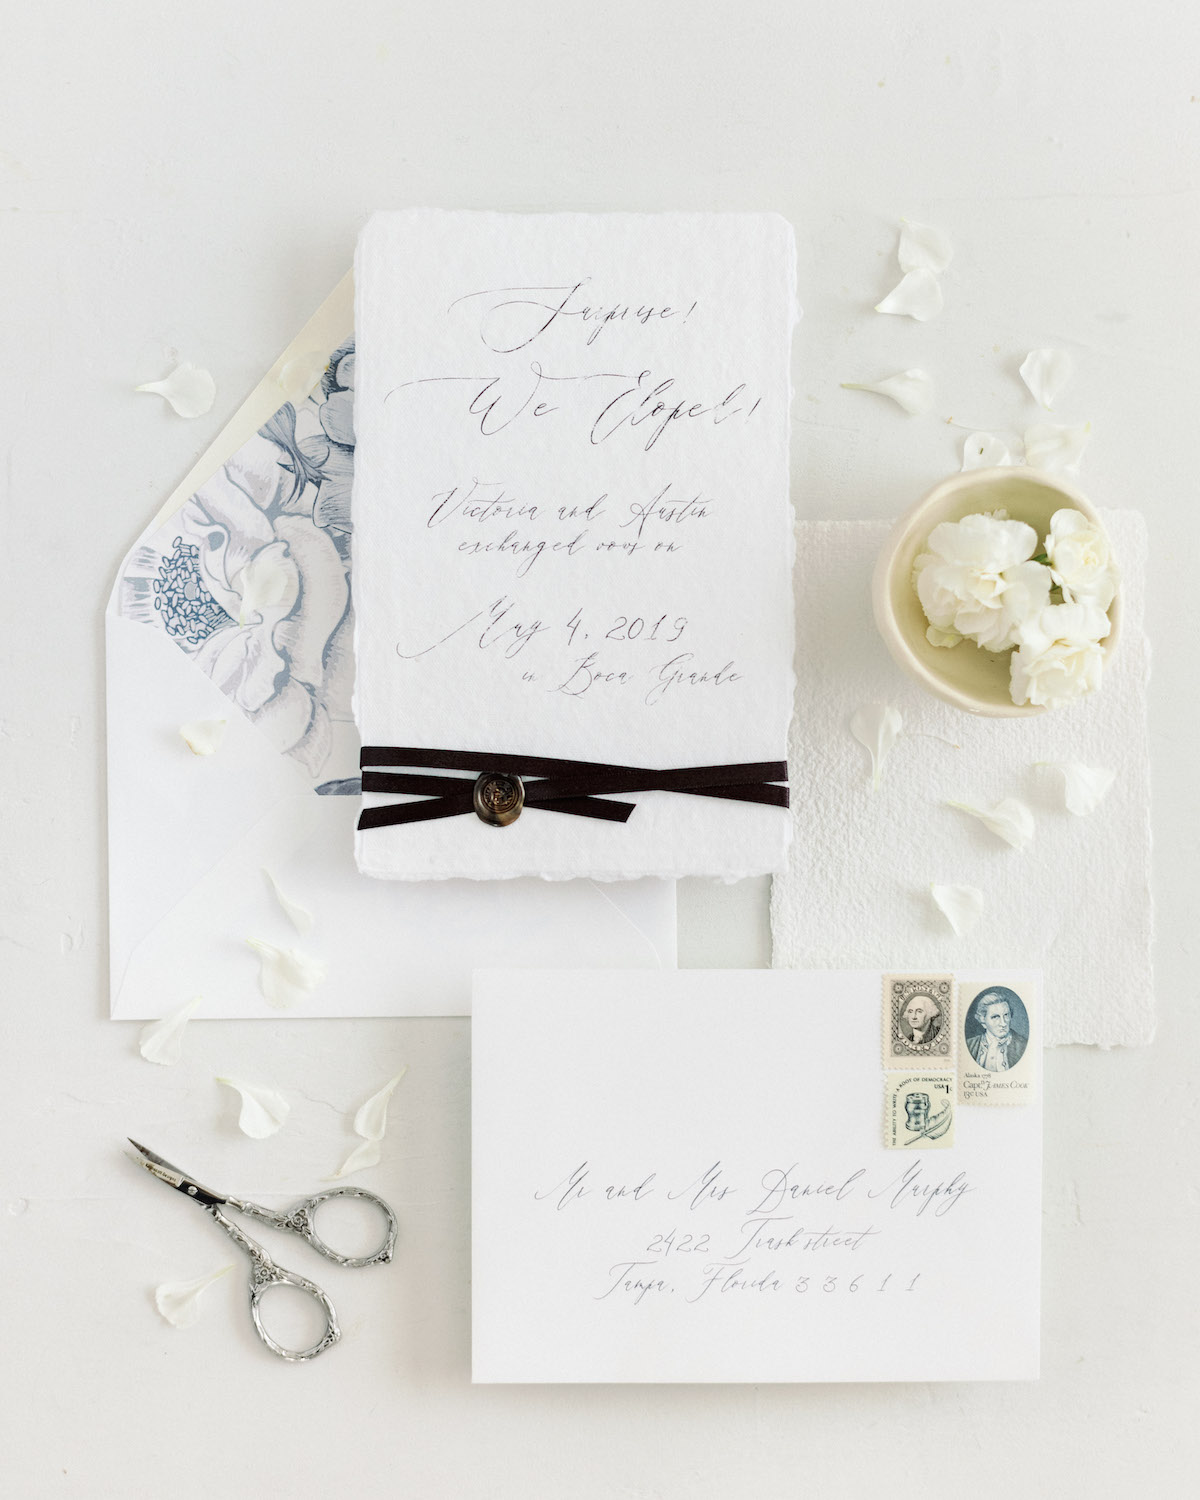 stationery by:  @doylepaperco   styling by: @hunterryanphoto